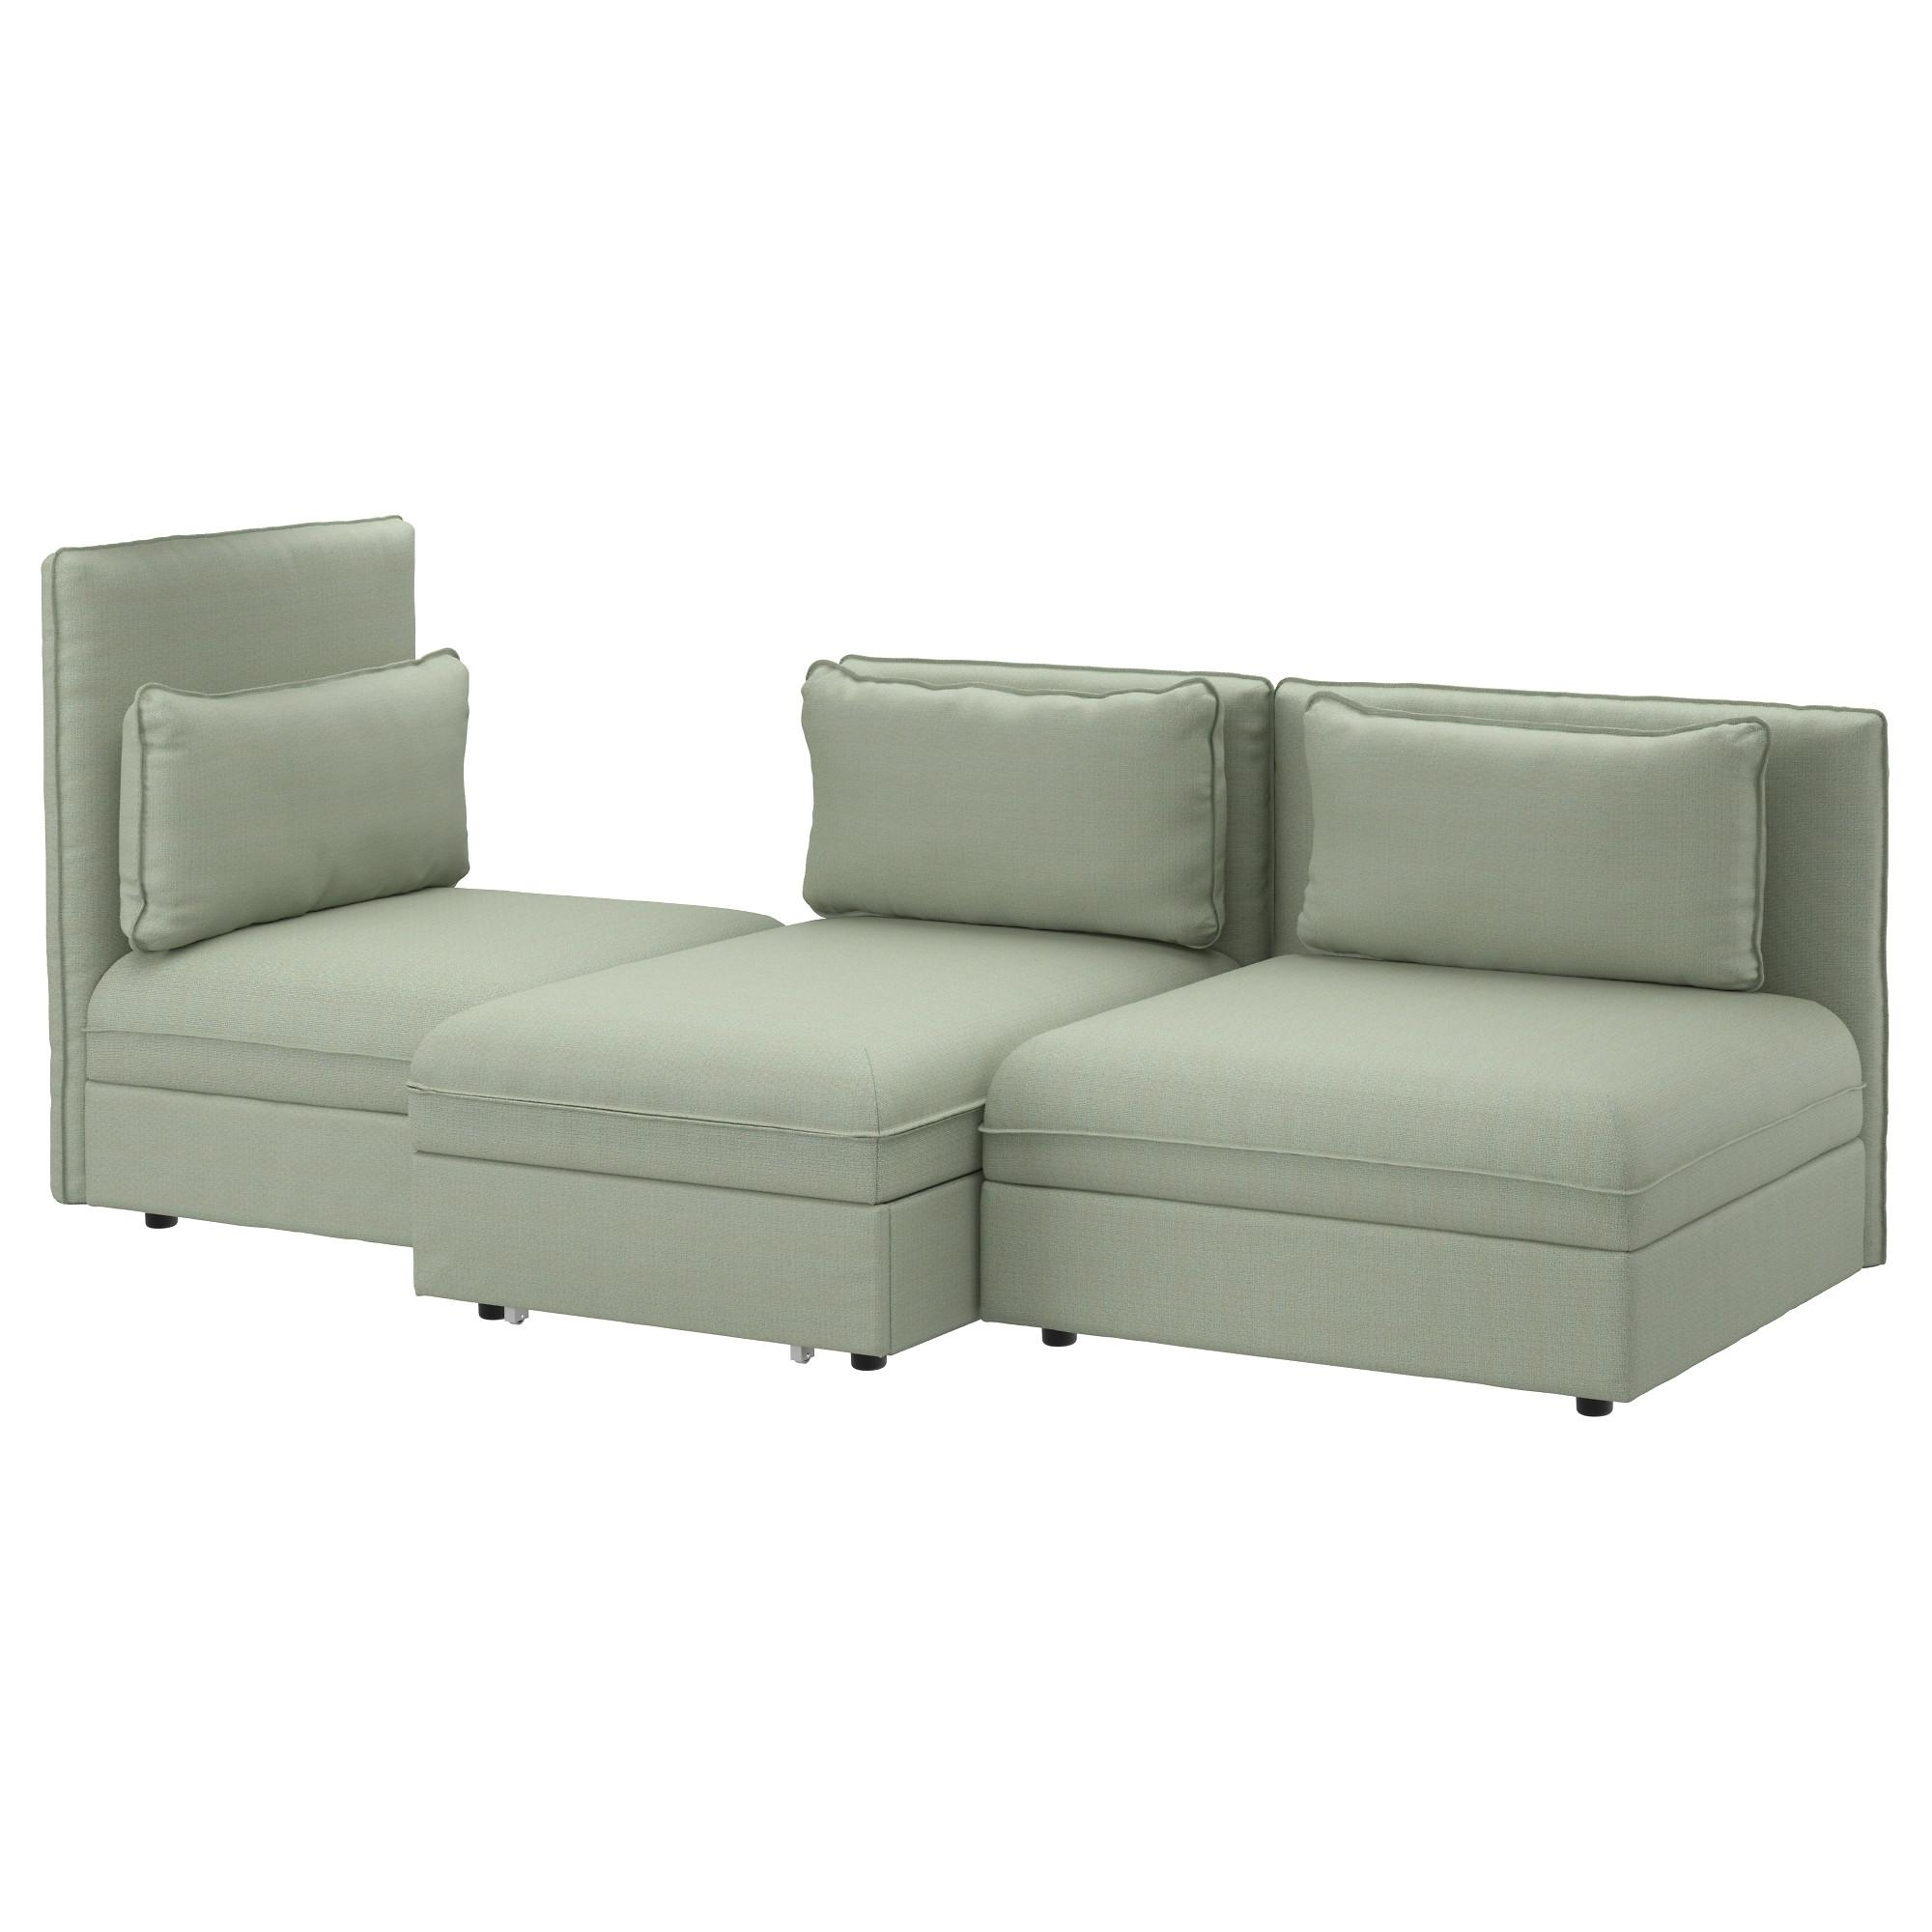 Sofa Beds & Futons – Ikea Intended For Ikea Sectional Sofa Bed (View 8 of 20)